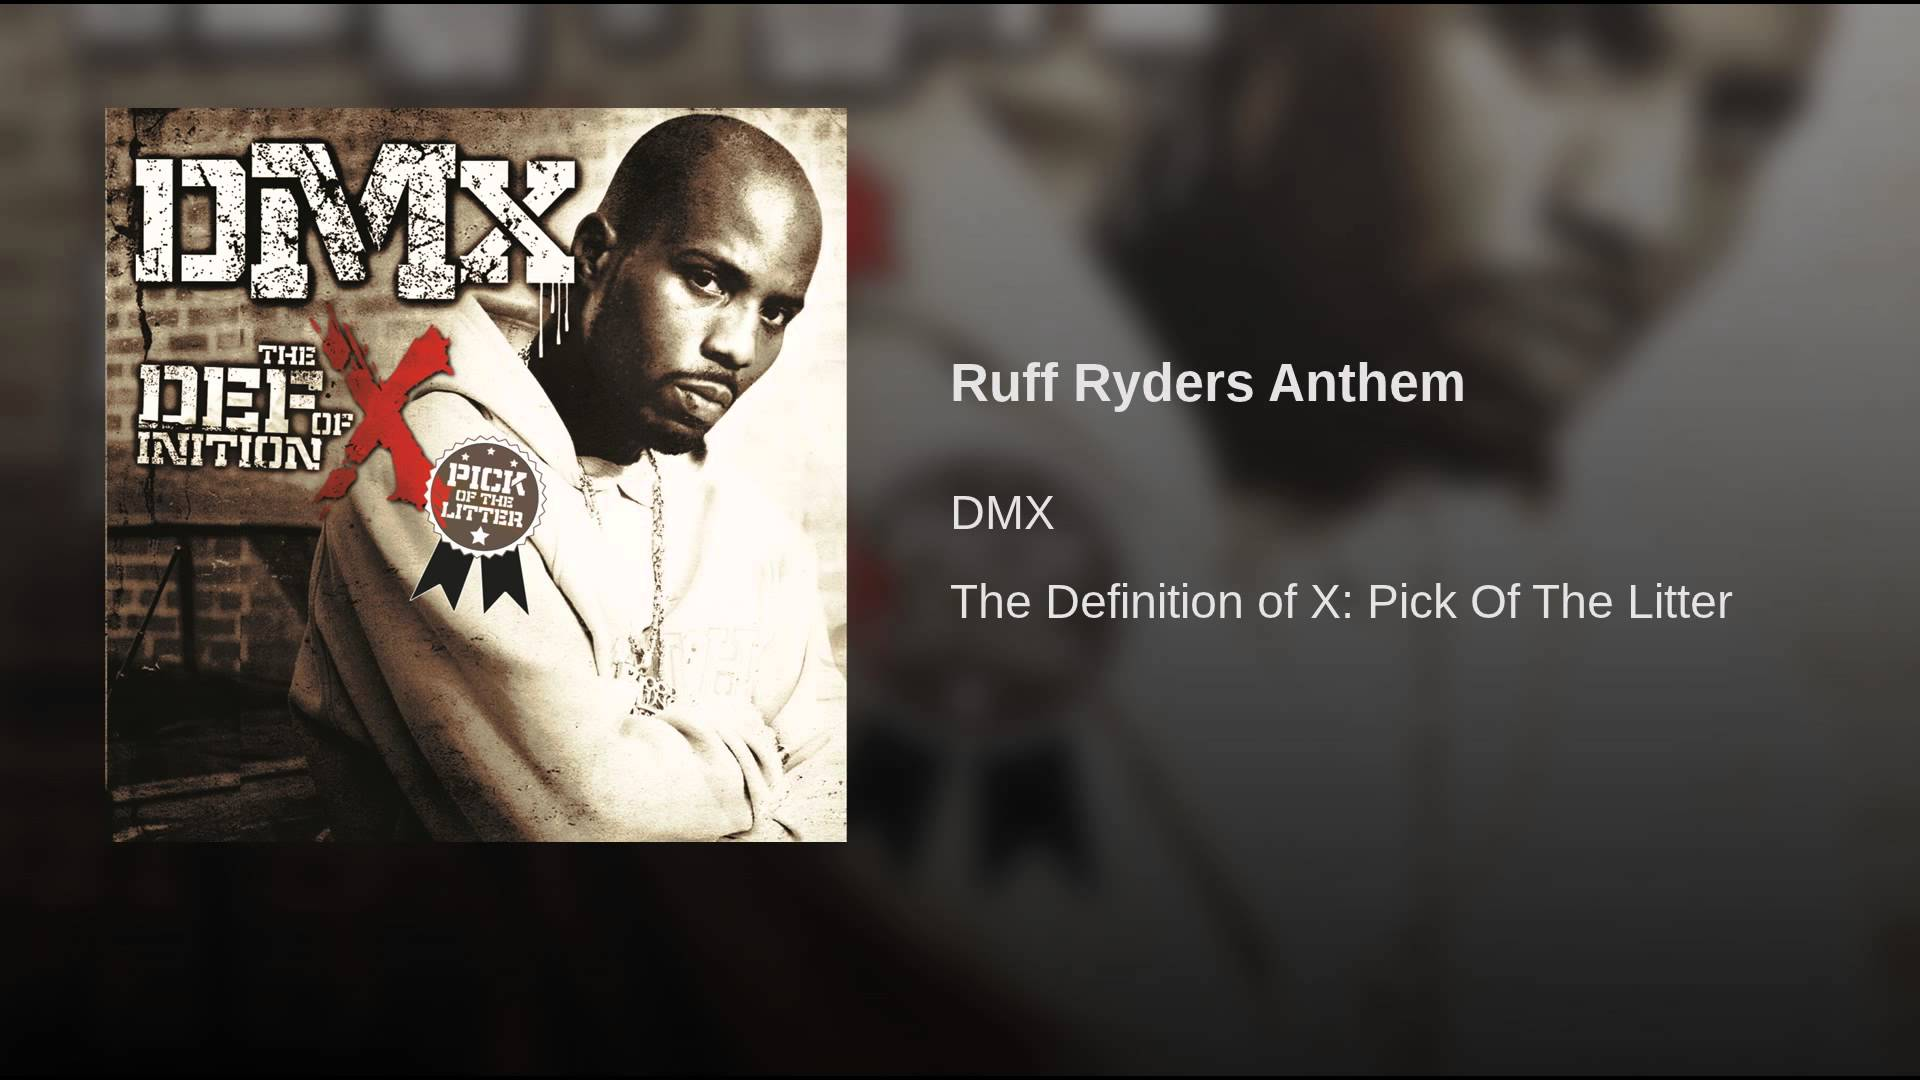 Barclays Center to host Ruff Ryders Reunion Tour